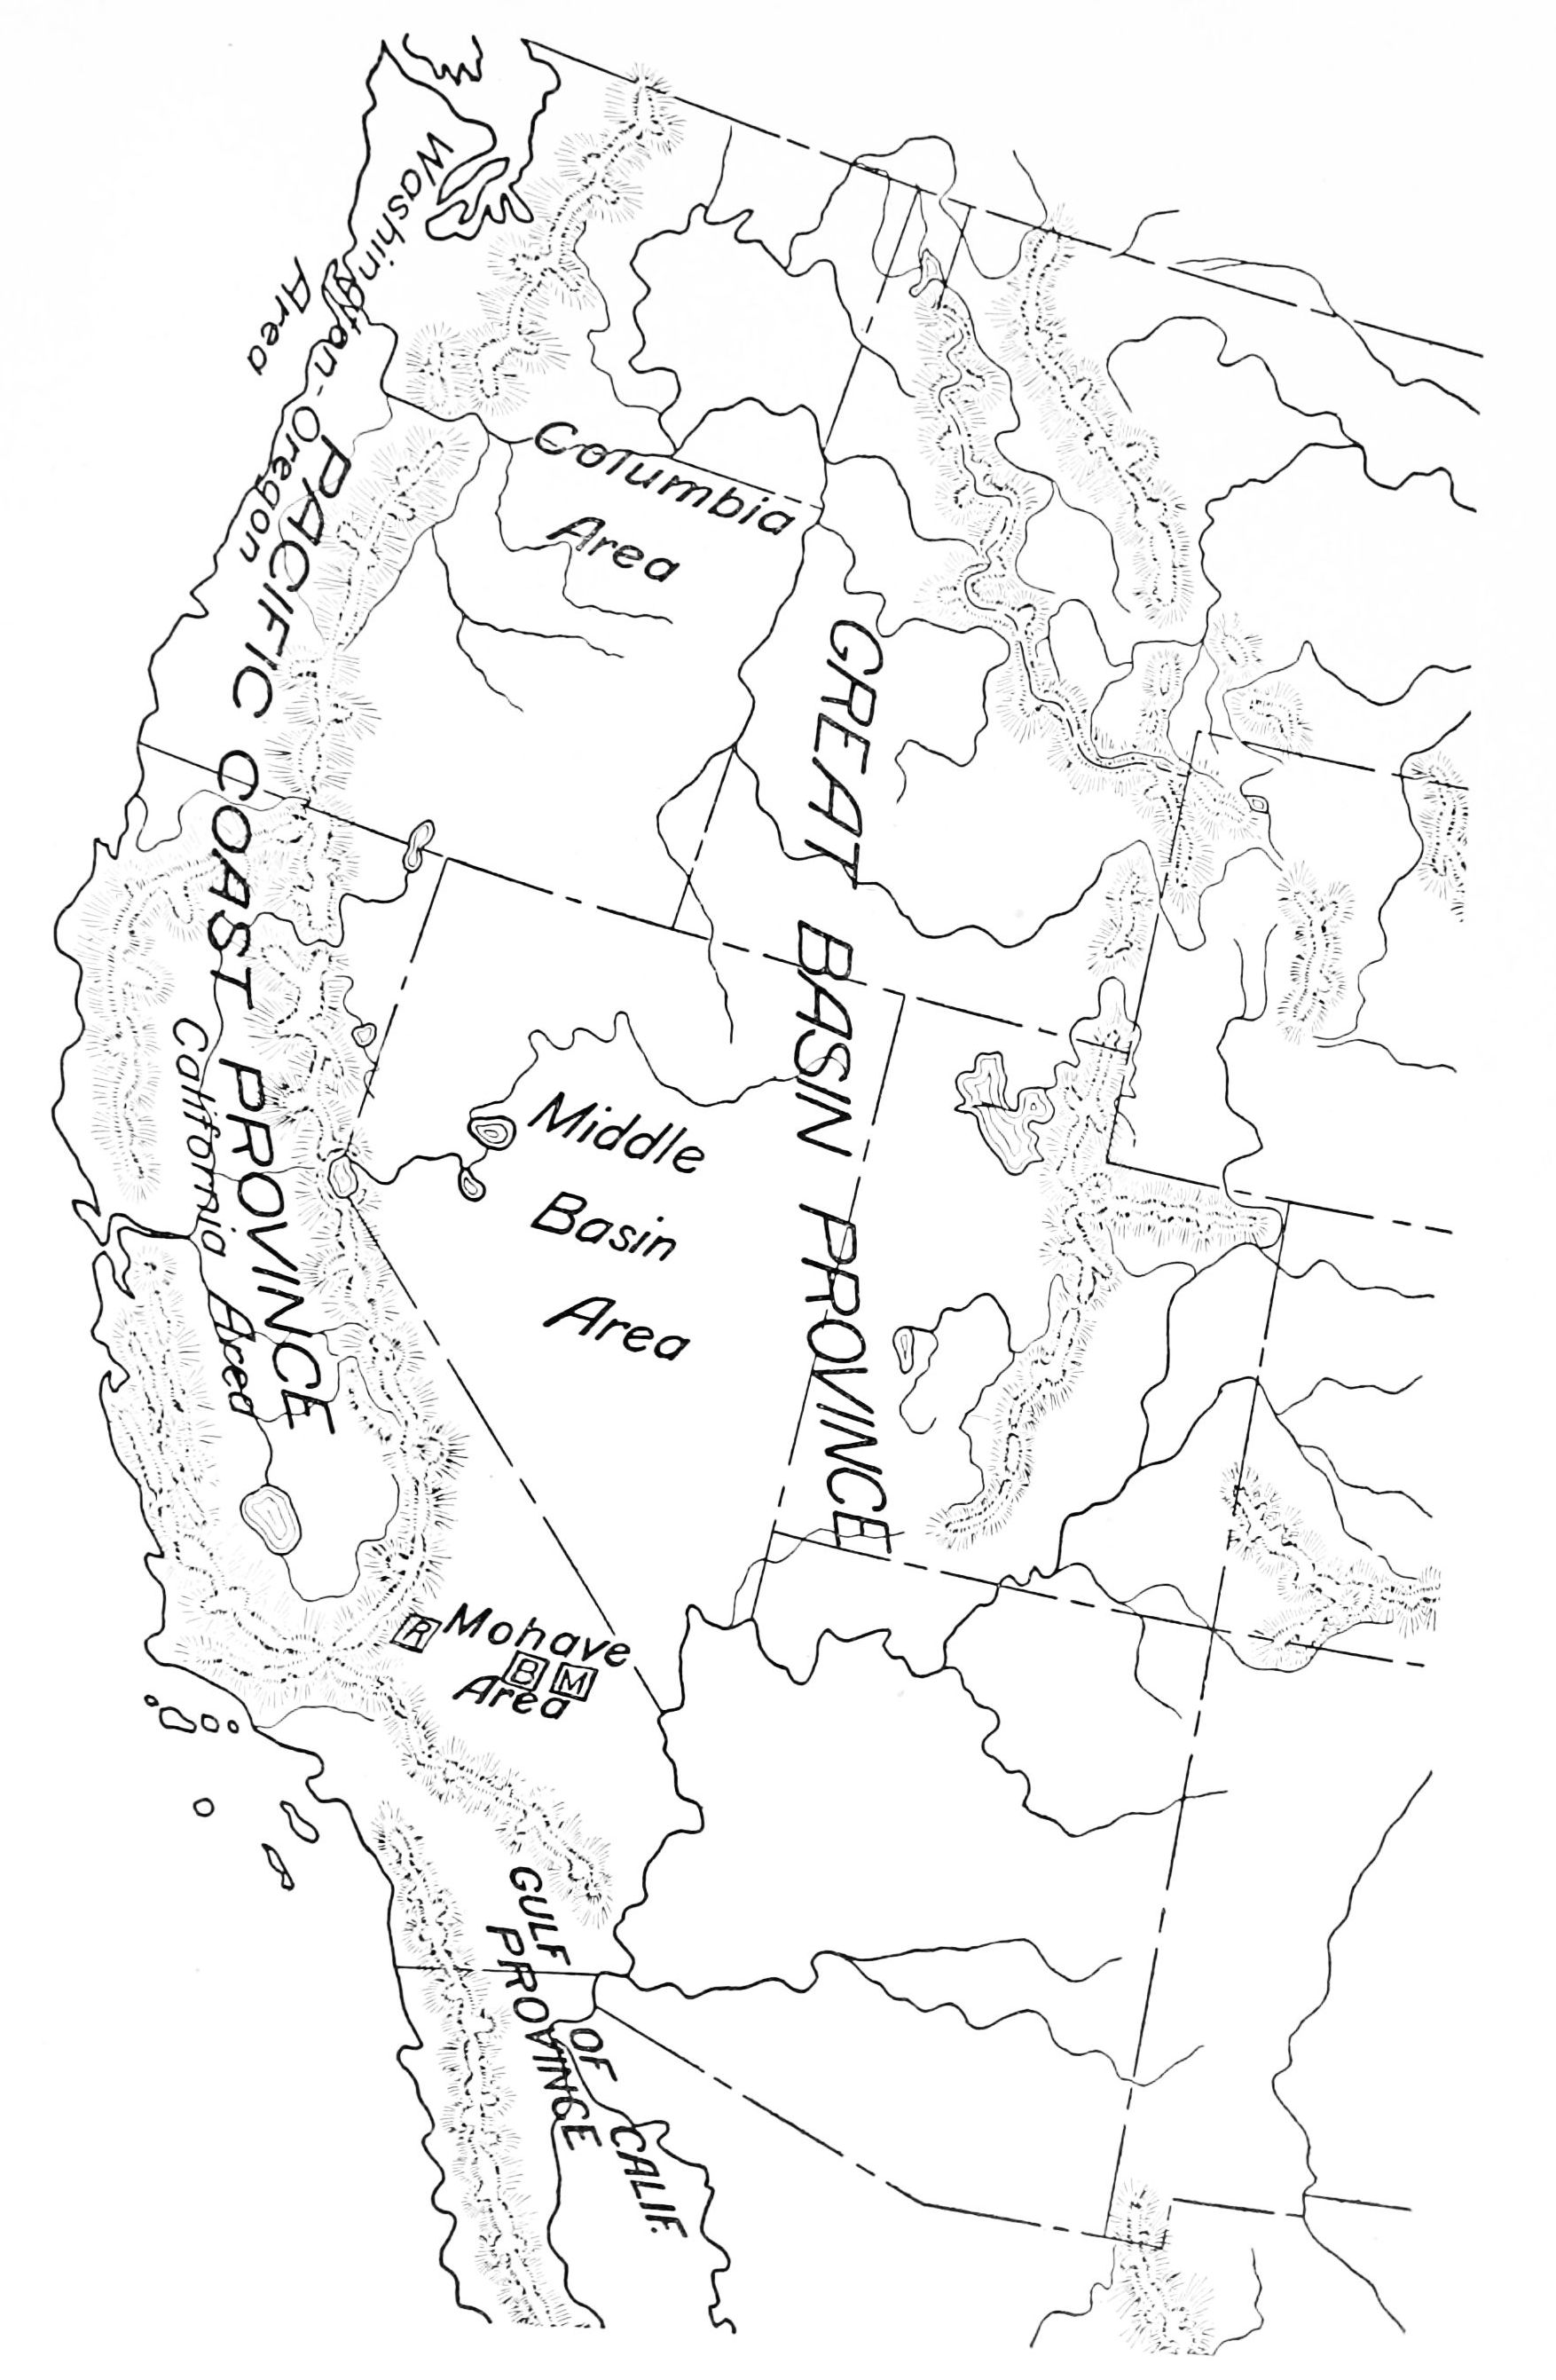 Image pacific northwest clipart map vector free Outline Map Of Pacific Northwest With Image Clipart ~ Free ... vector free